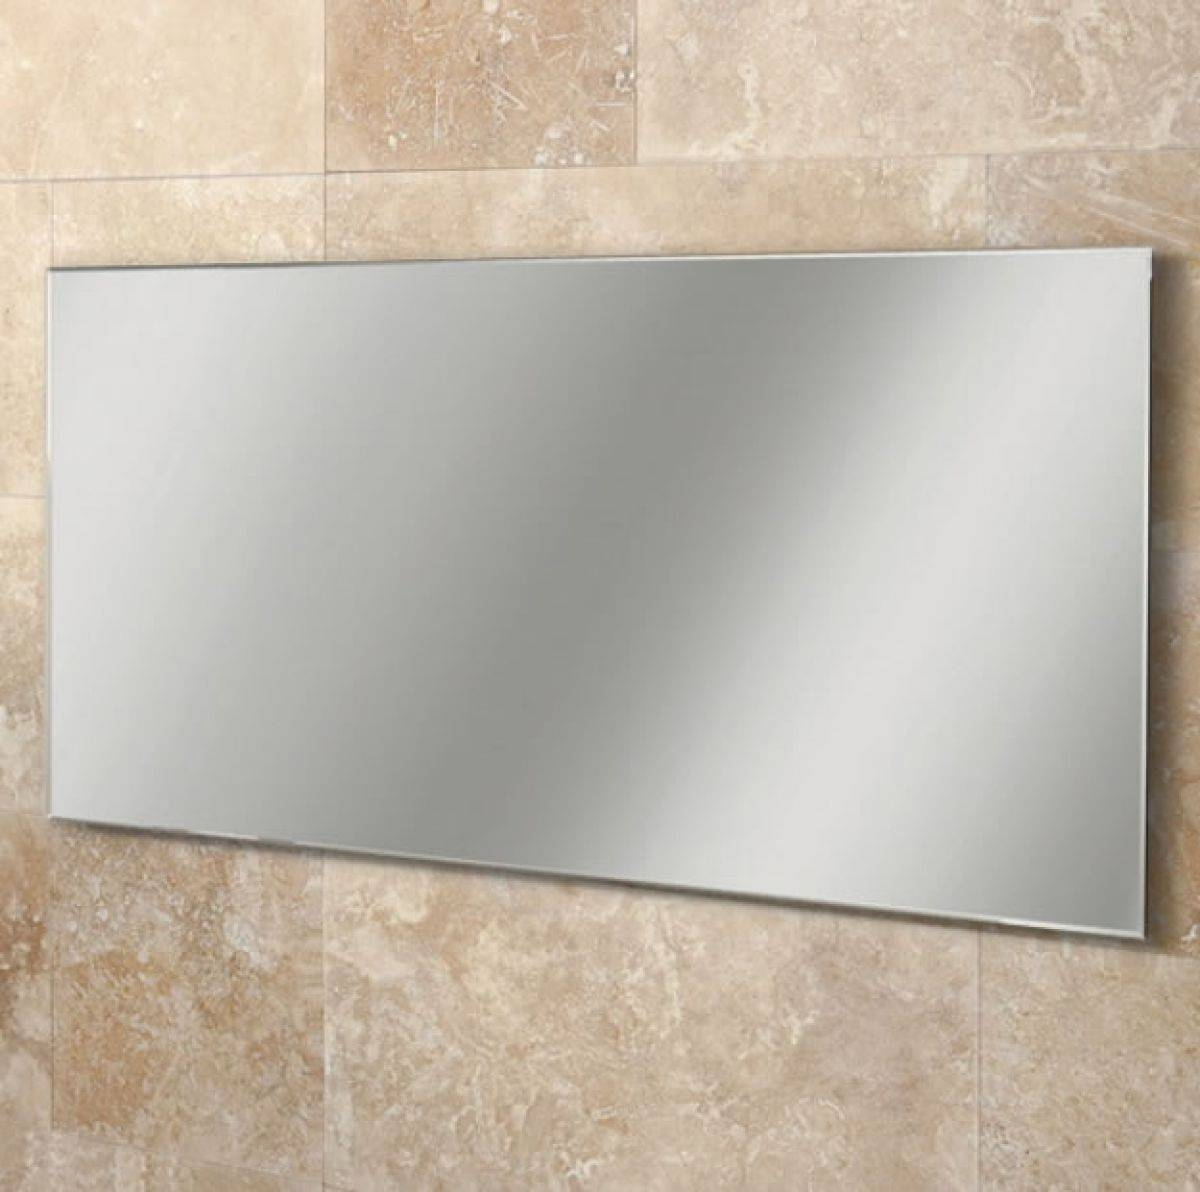 Large Frameless Bathroom Mirror Collection And Mirrors Bath The with Large Frameless Mirrors (Image 16 of 25)